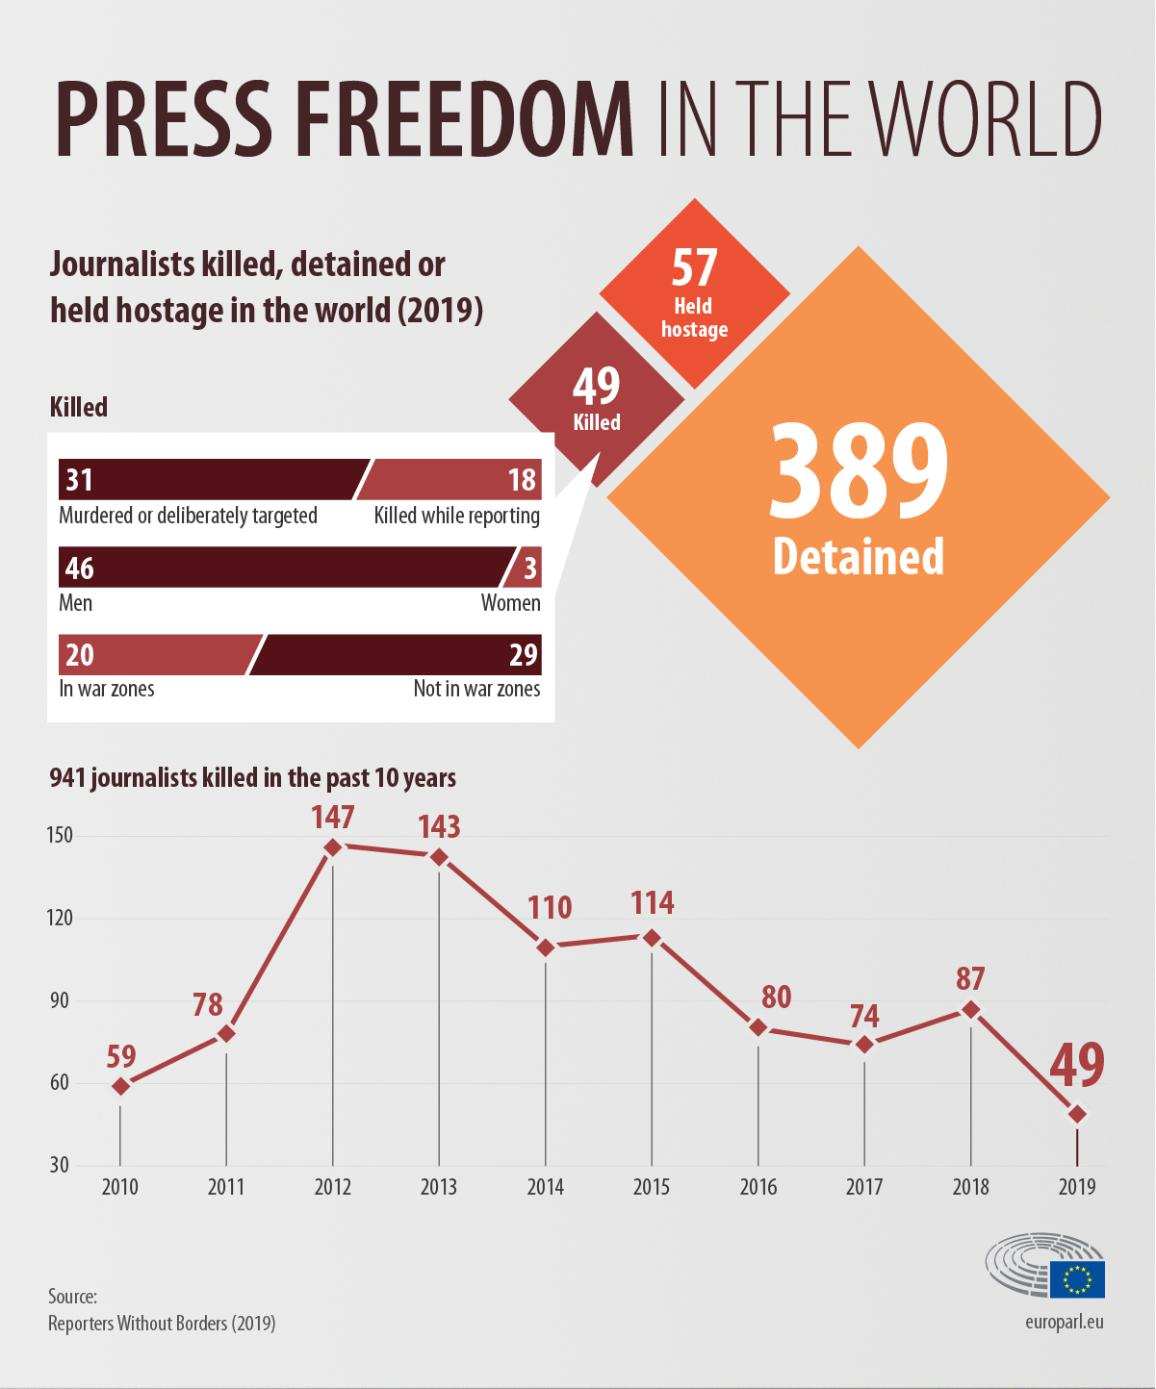 infographic on the number of journalists killed, detained or held hostage in the word in 2019 and its evolution since 2010